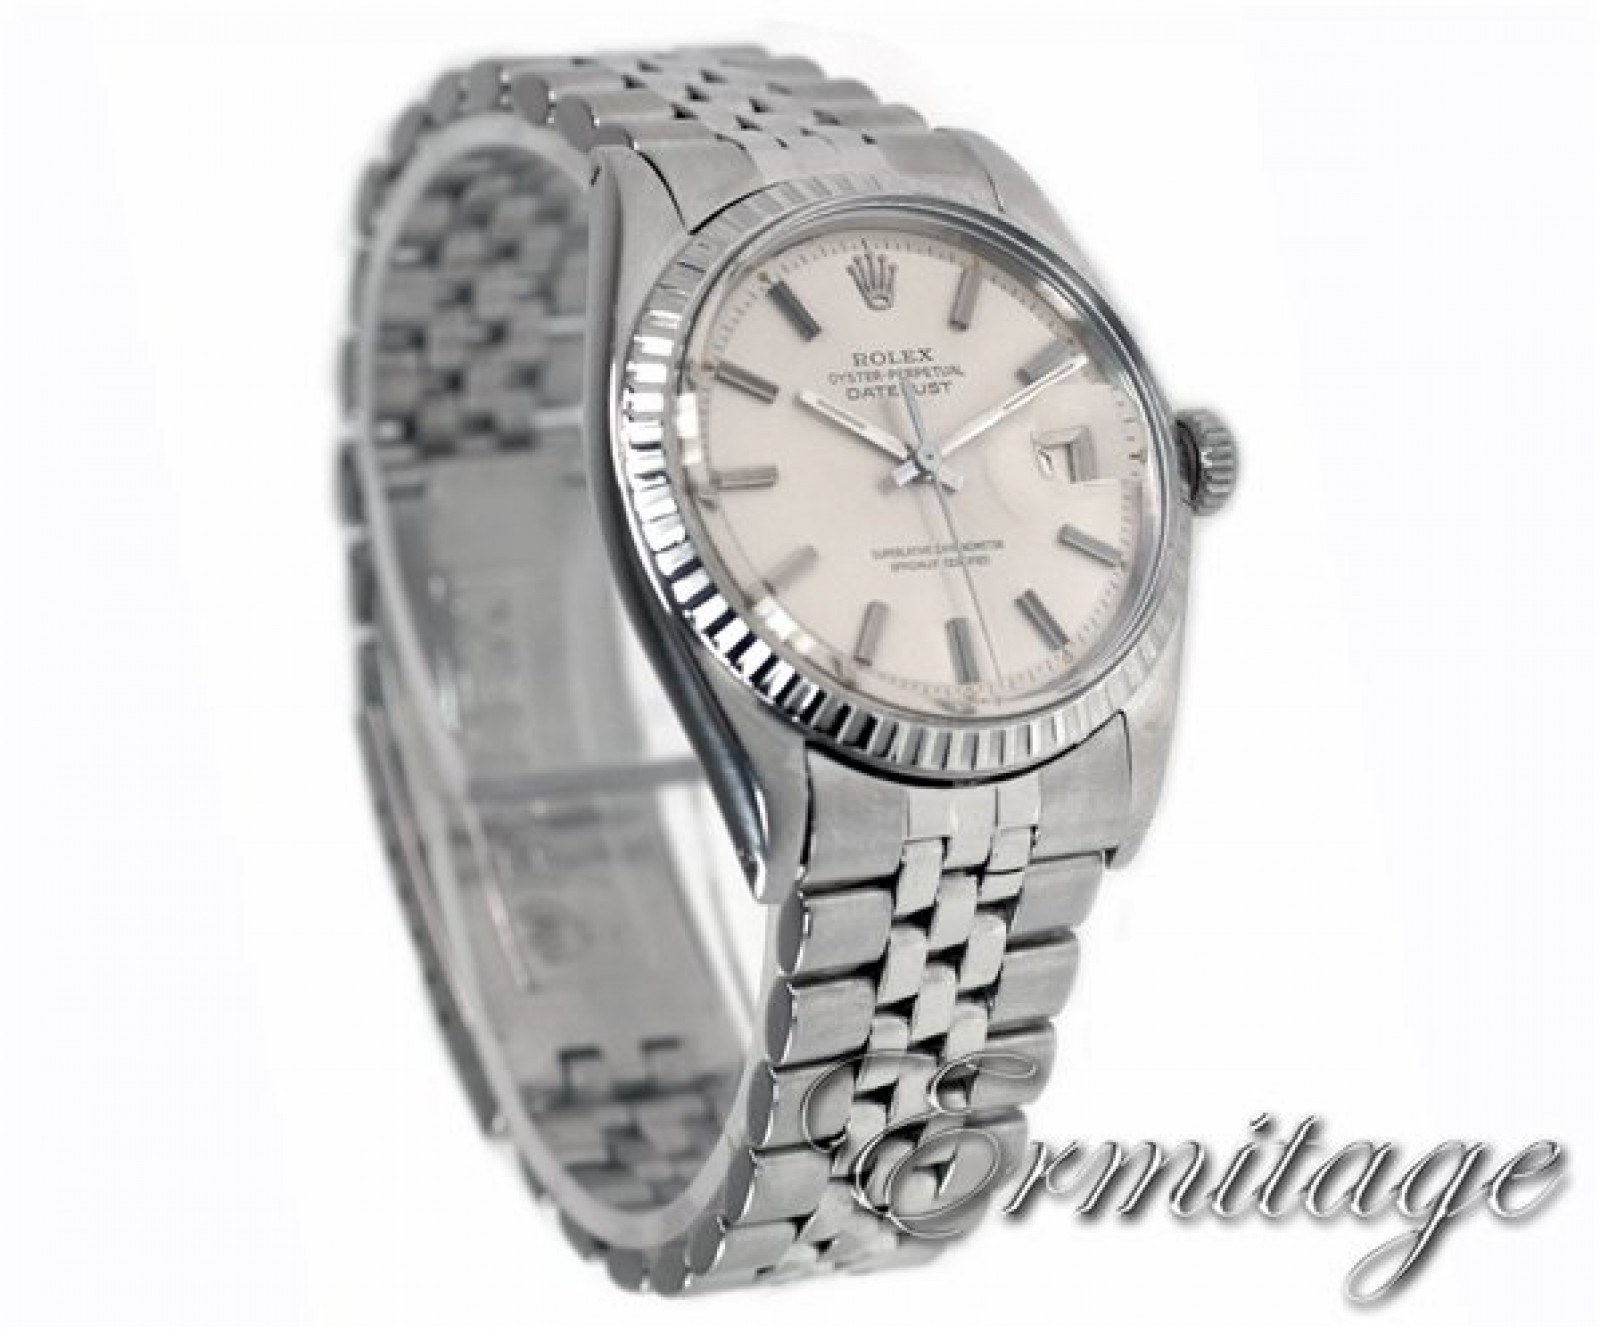 Vintage Rolex Datejust 1603 Steel Year 1965